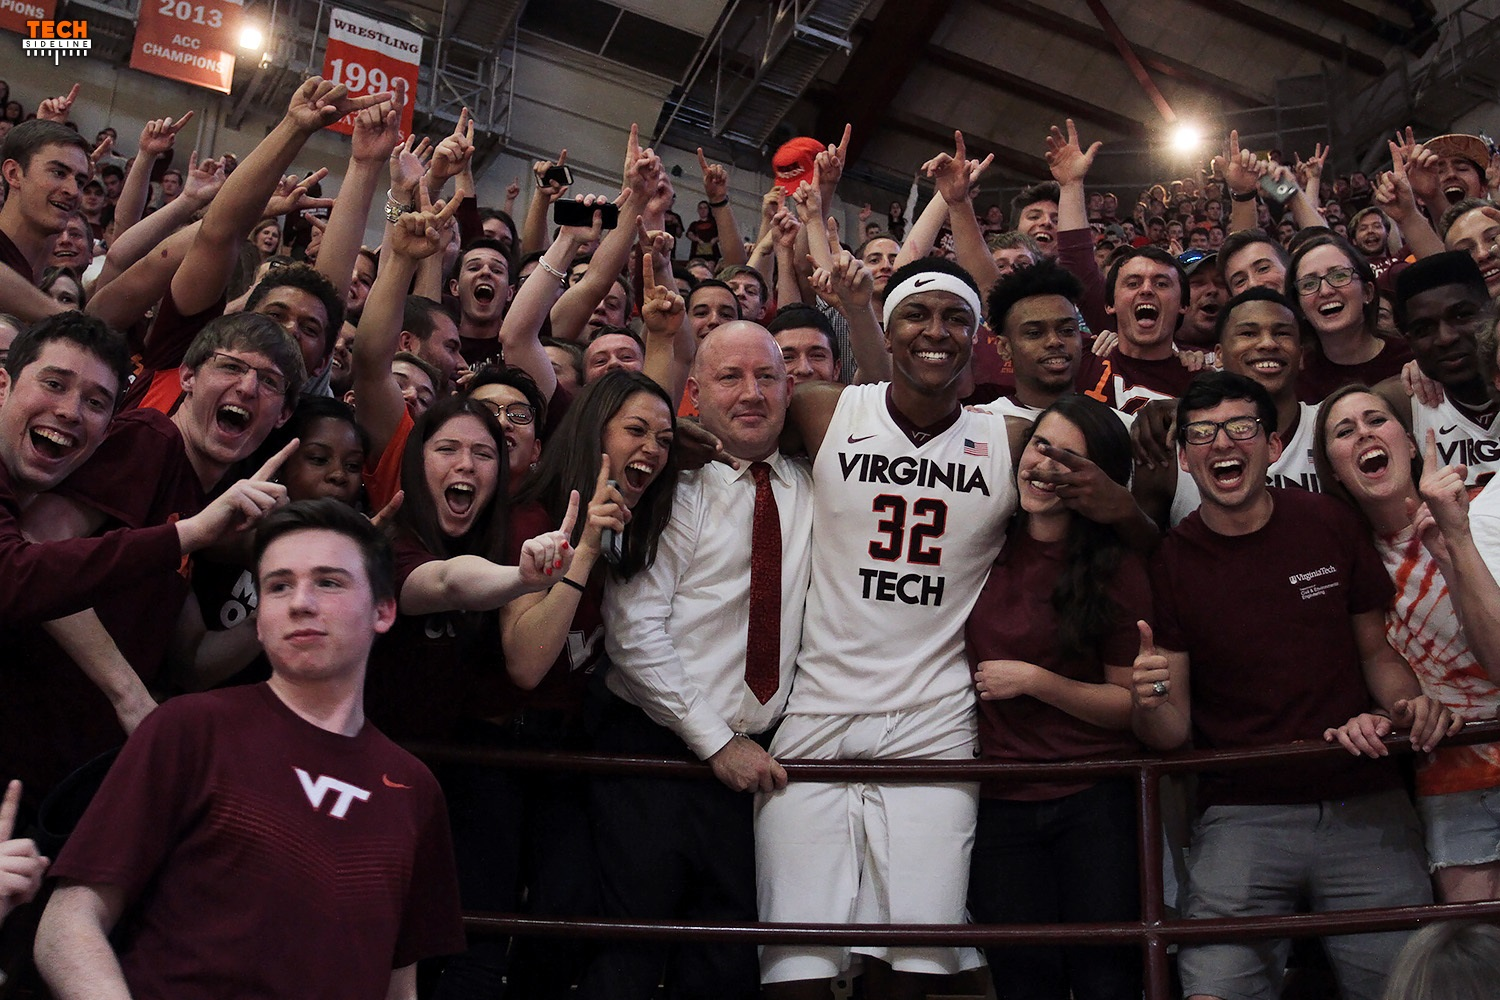 Buzz Williams and the team (Zach LeDay shown here) went up into the stands after the overtime win against Princeton.